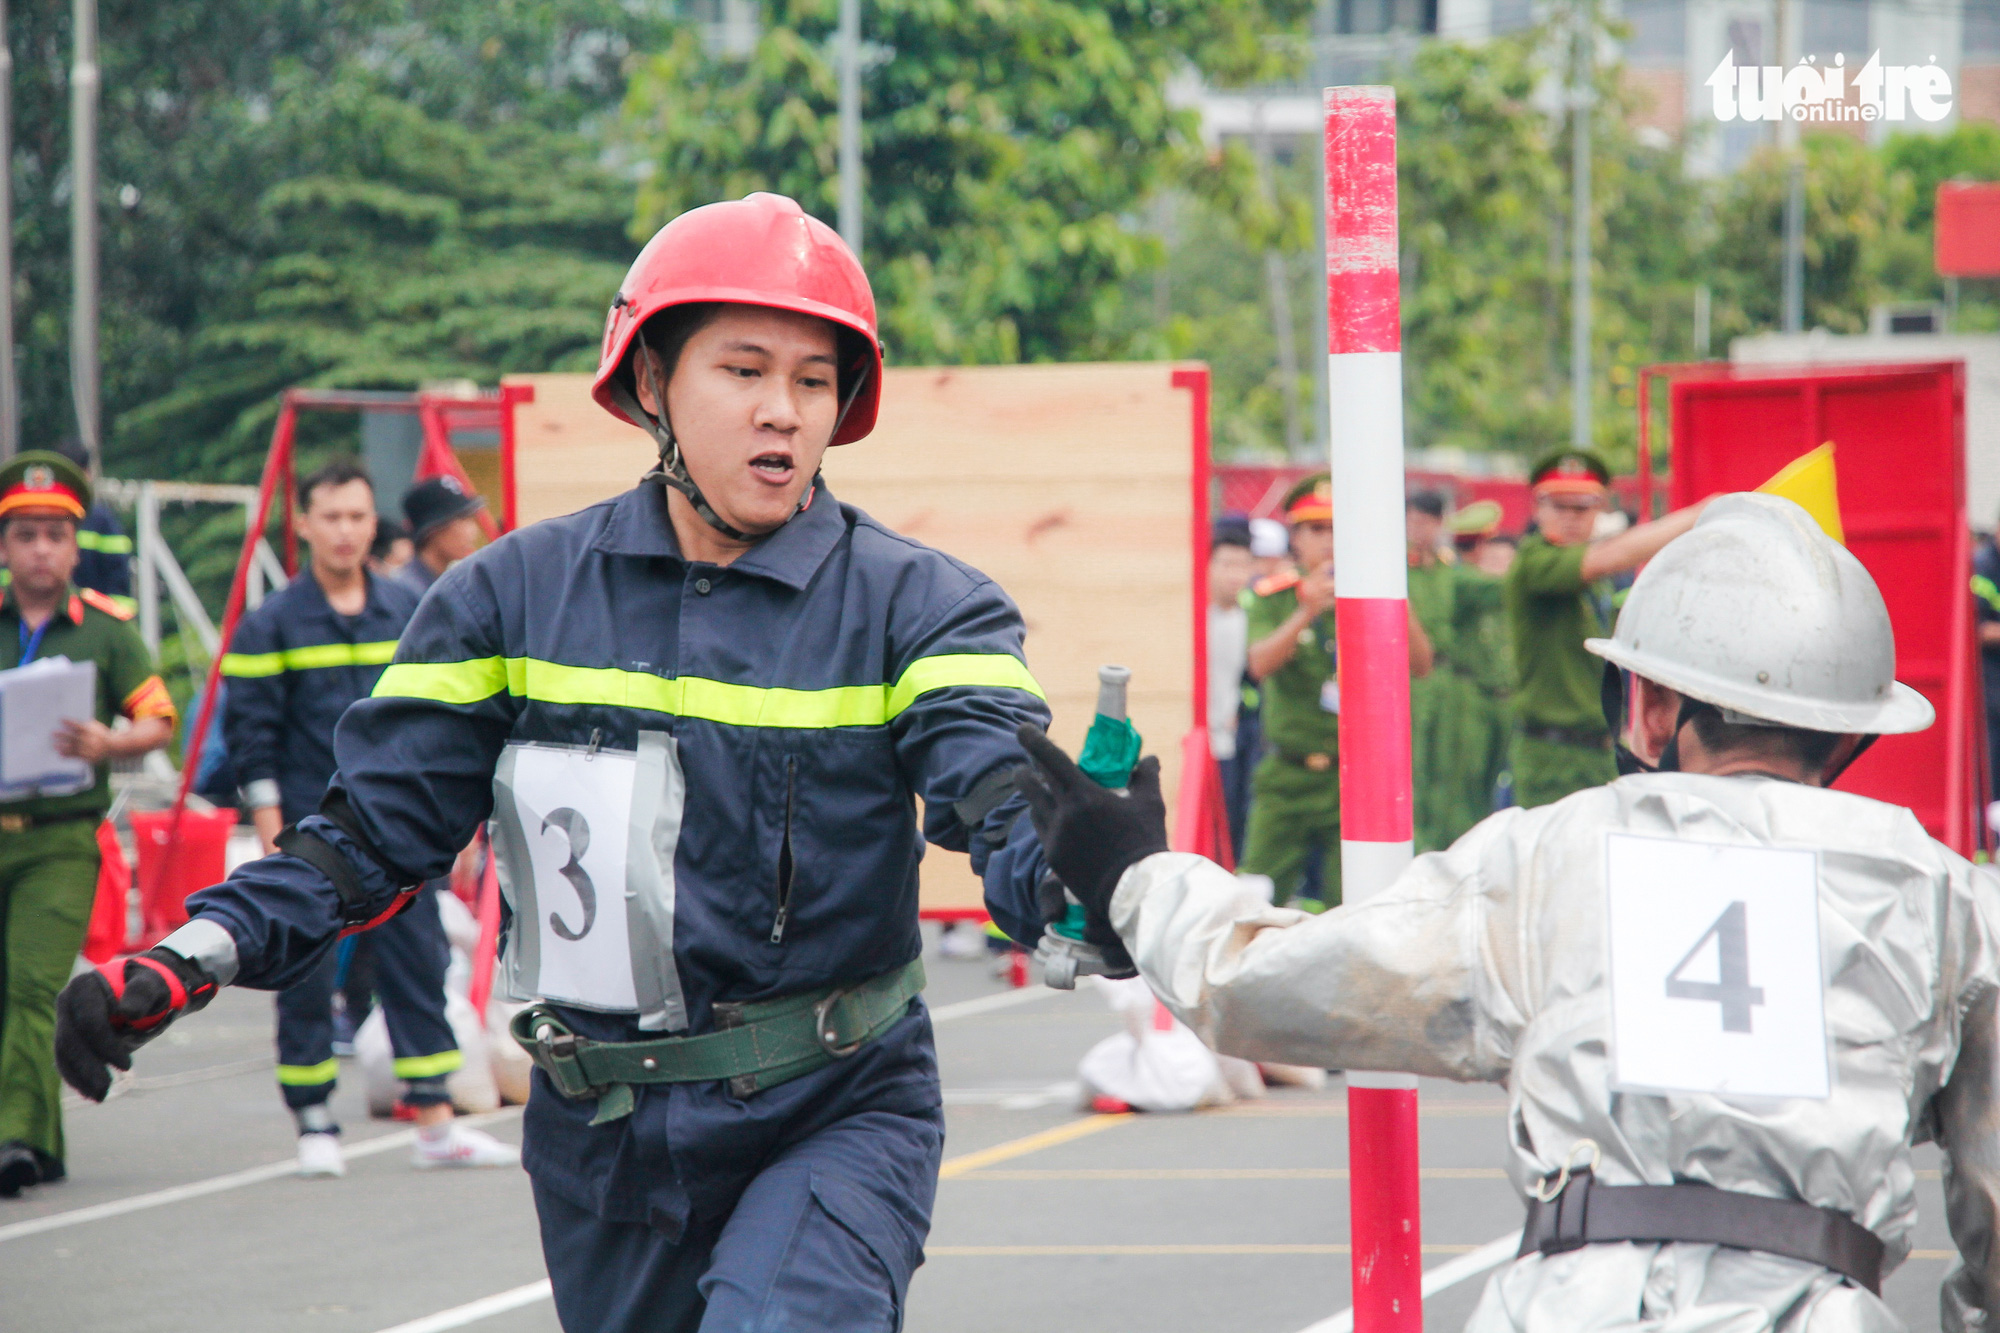 Firefighters participate in a relay race during a firefighting and rescue competition in Ho Chi Minh City, June 16, 2020. Photo: Chau Tuan / Tuoi Tre